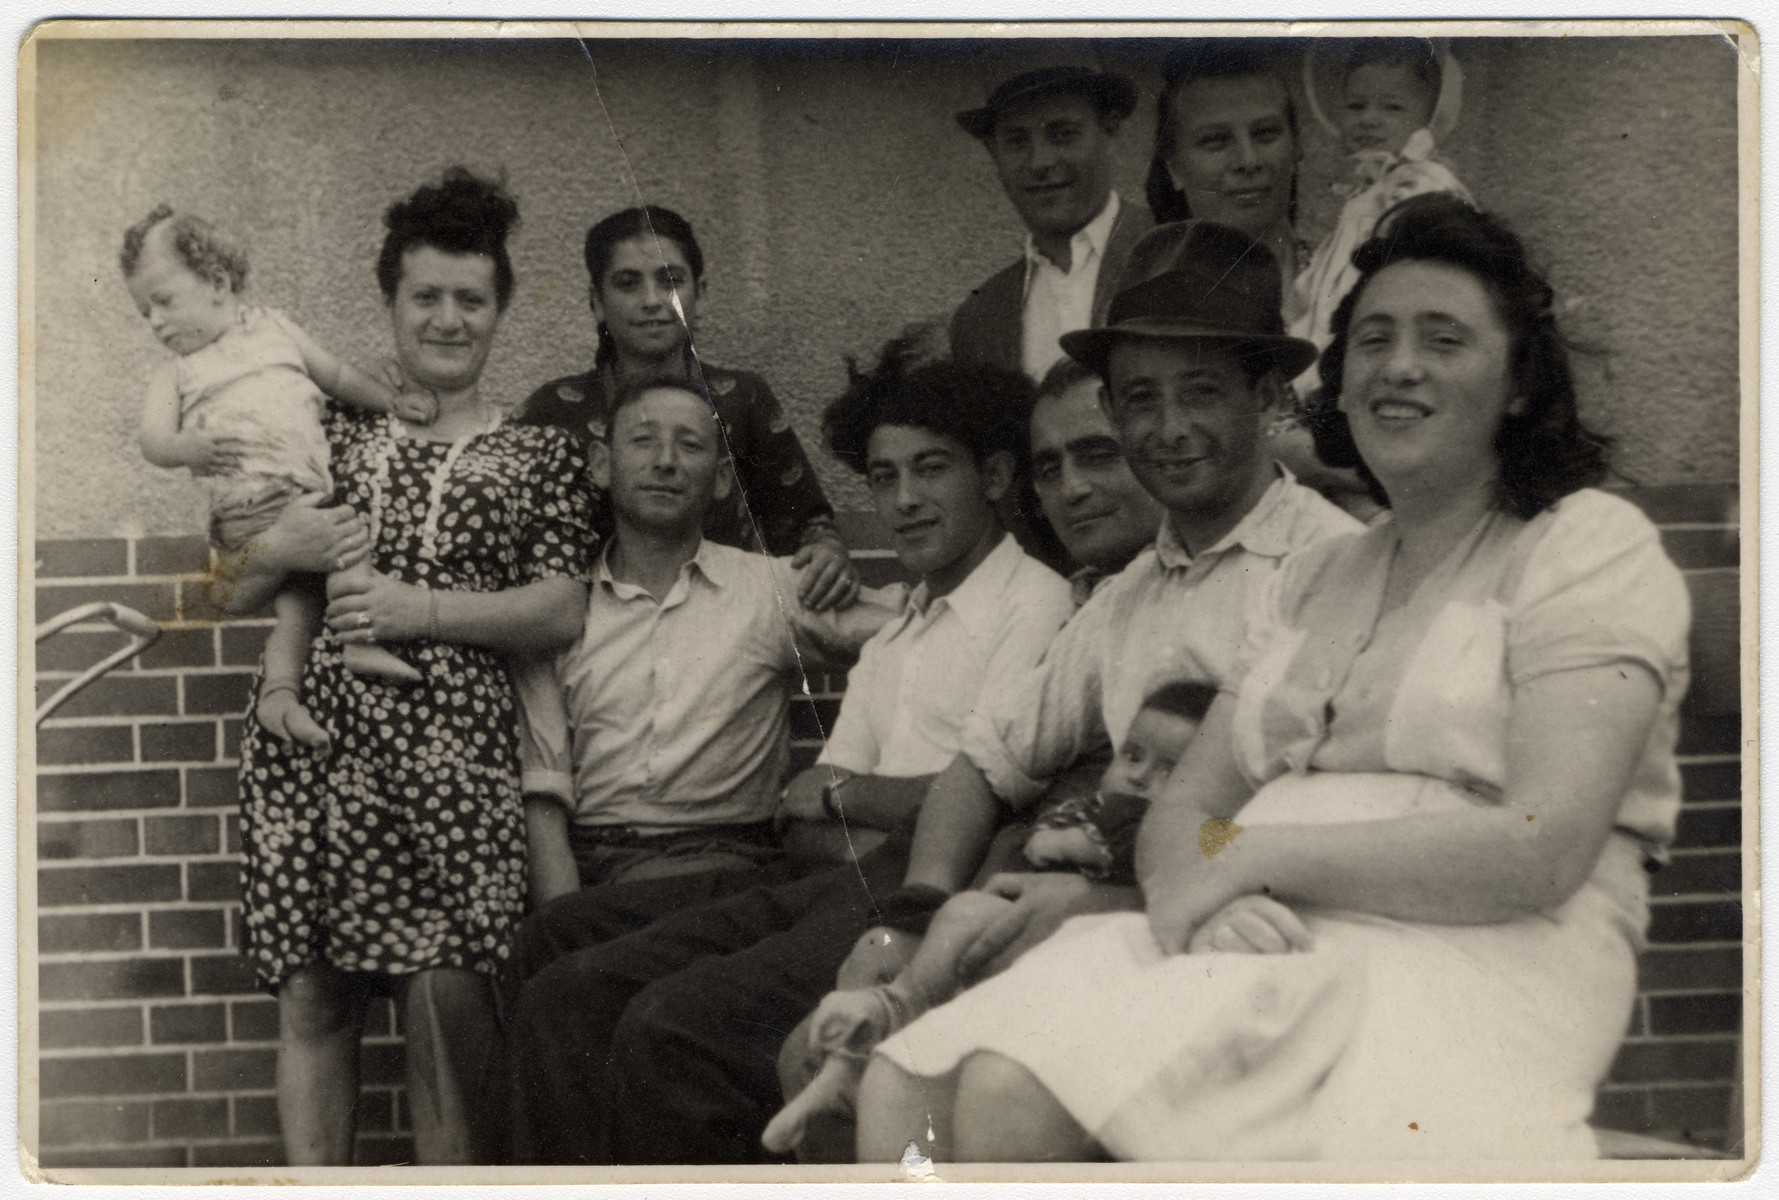 Group portrait of men and women holding young children in the Bergen-Belsen displaced persons camp.  Esther Rosengarten is pictured on the left in the polka dot dress, holding her son Aaron Rosengarten.